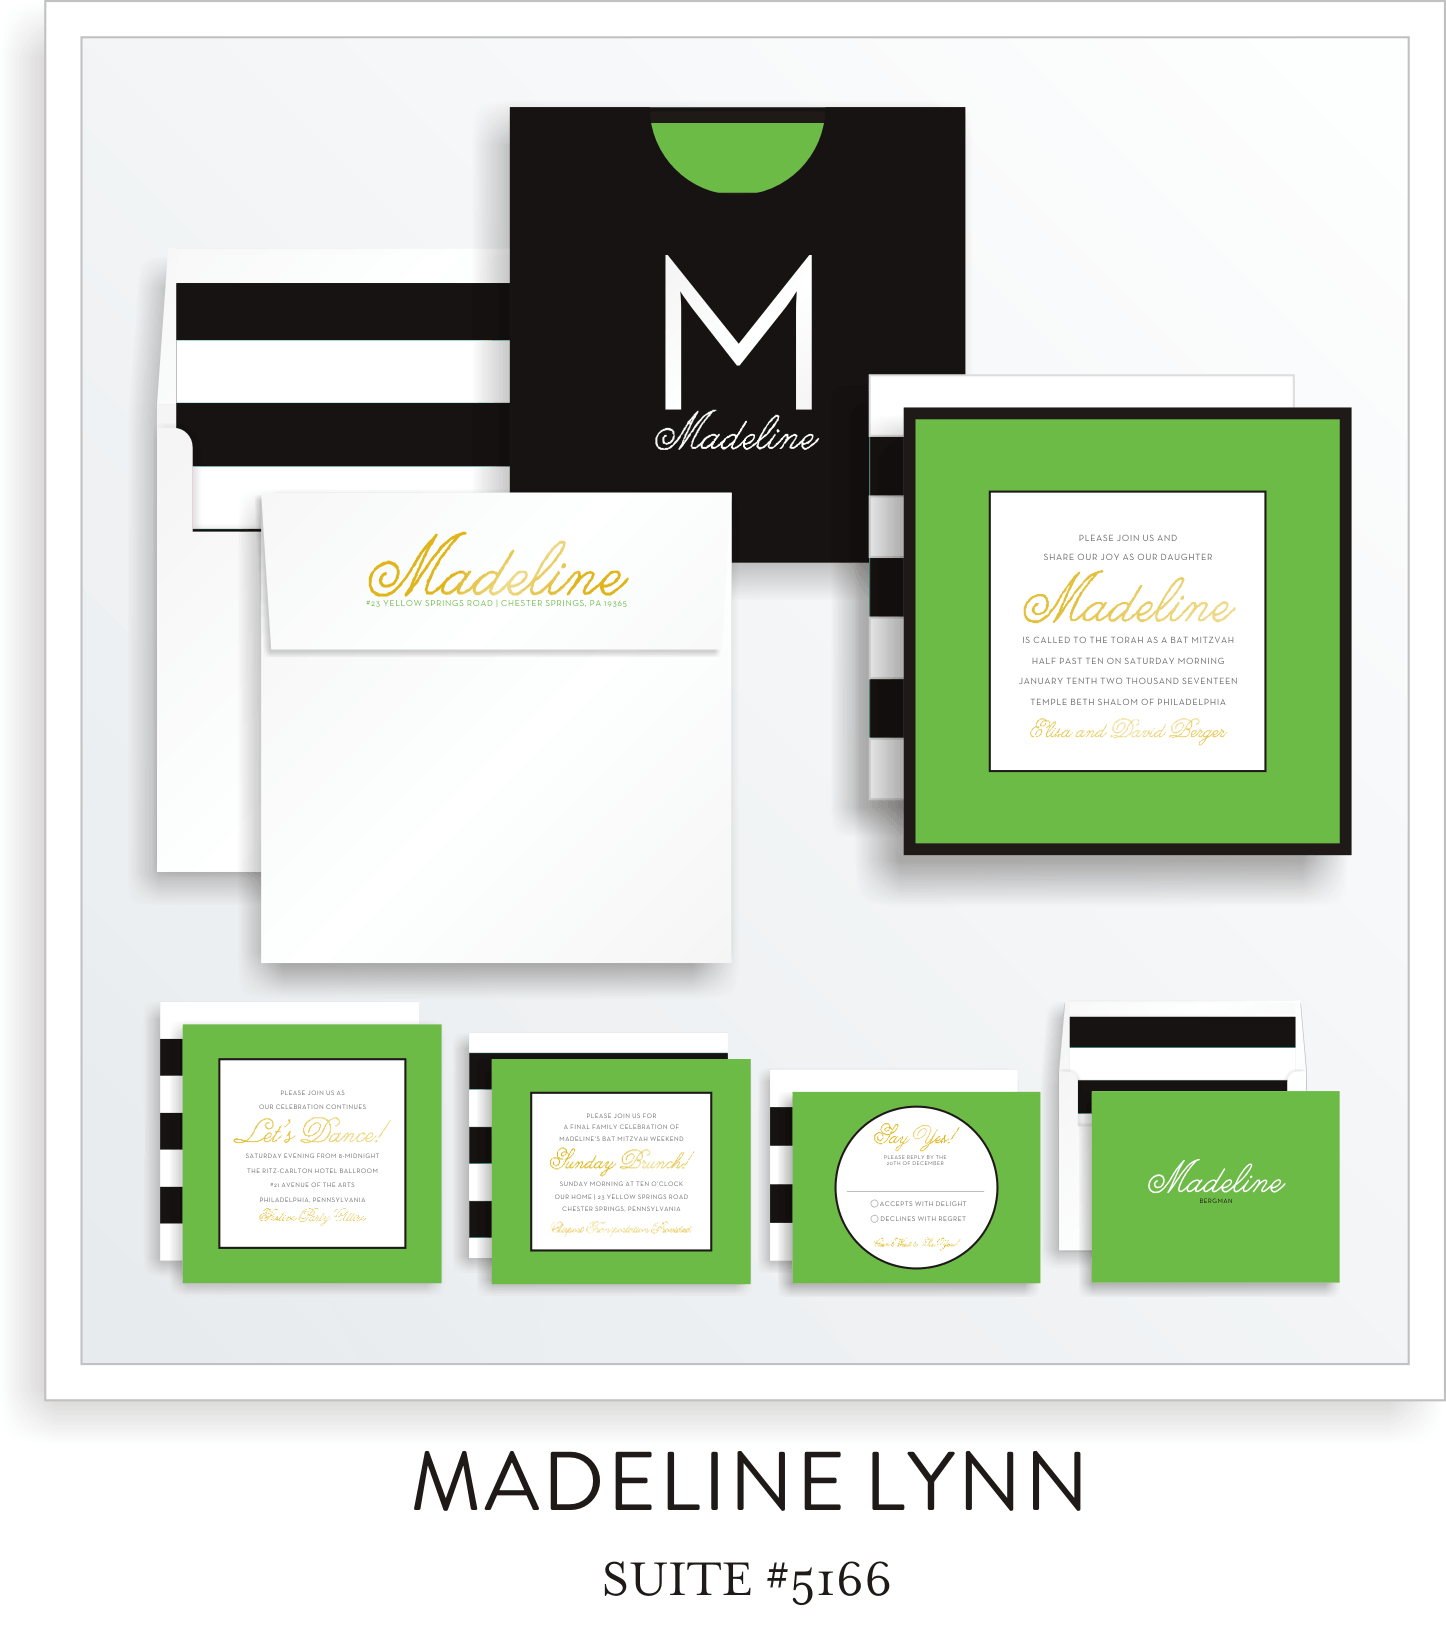 Copy of Bat Mitzvah Invitation Suite 5166 - Madeline Lynn